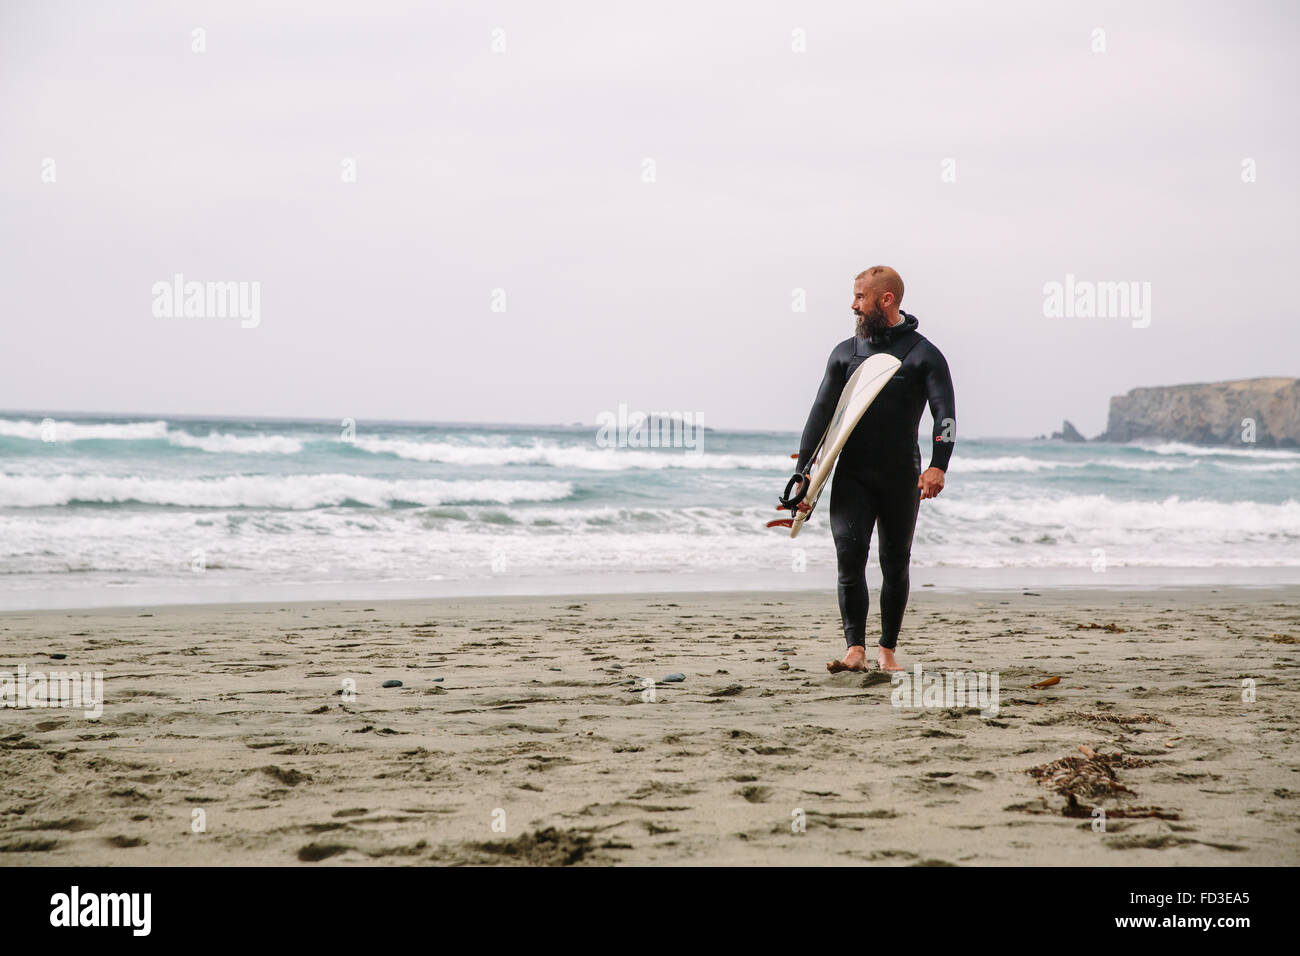 A surfer walks in from the water after a day out on the waves in Big Sur, California. Stock Photo